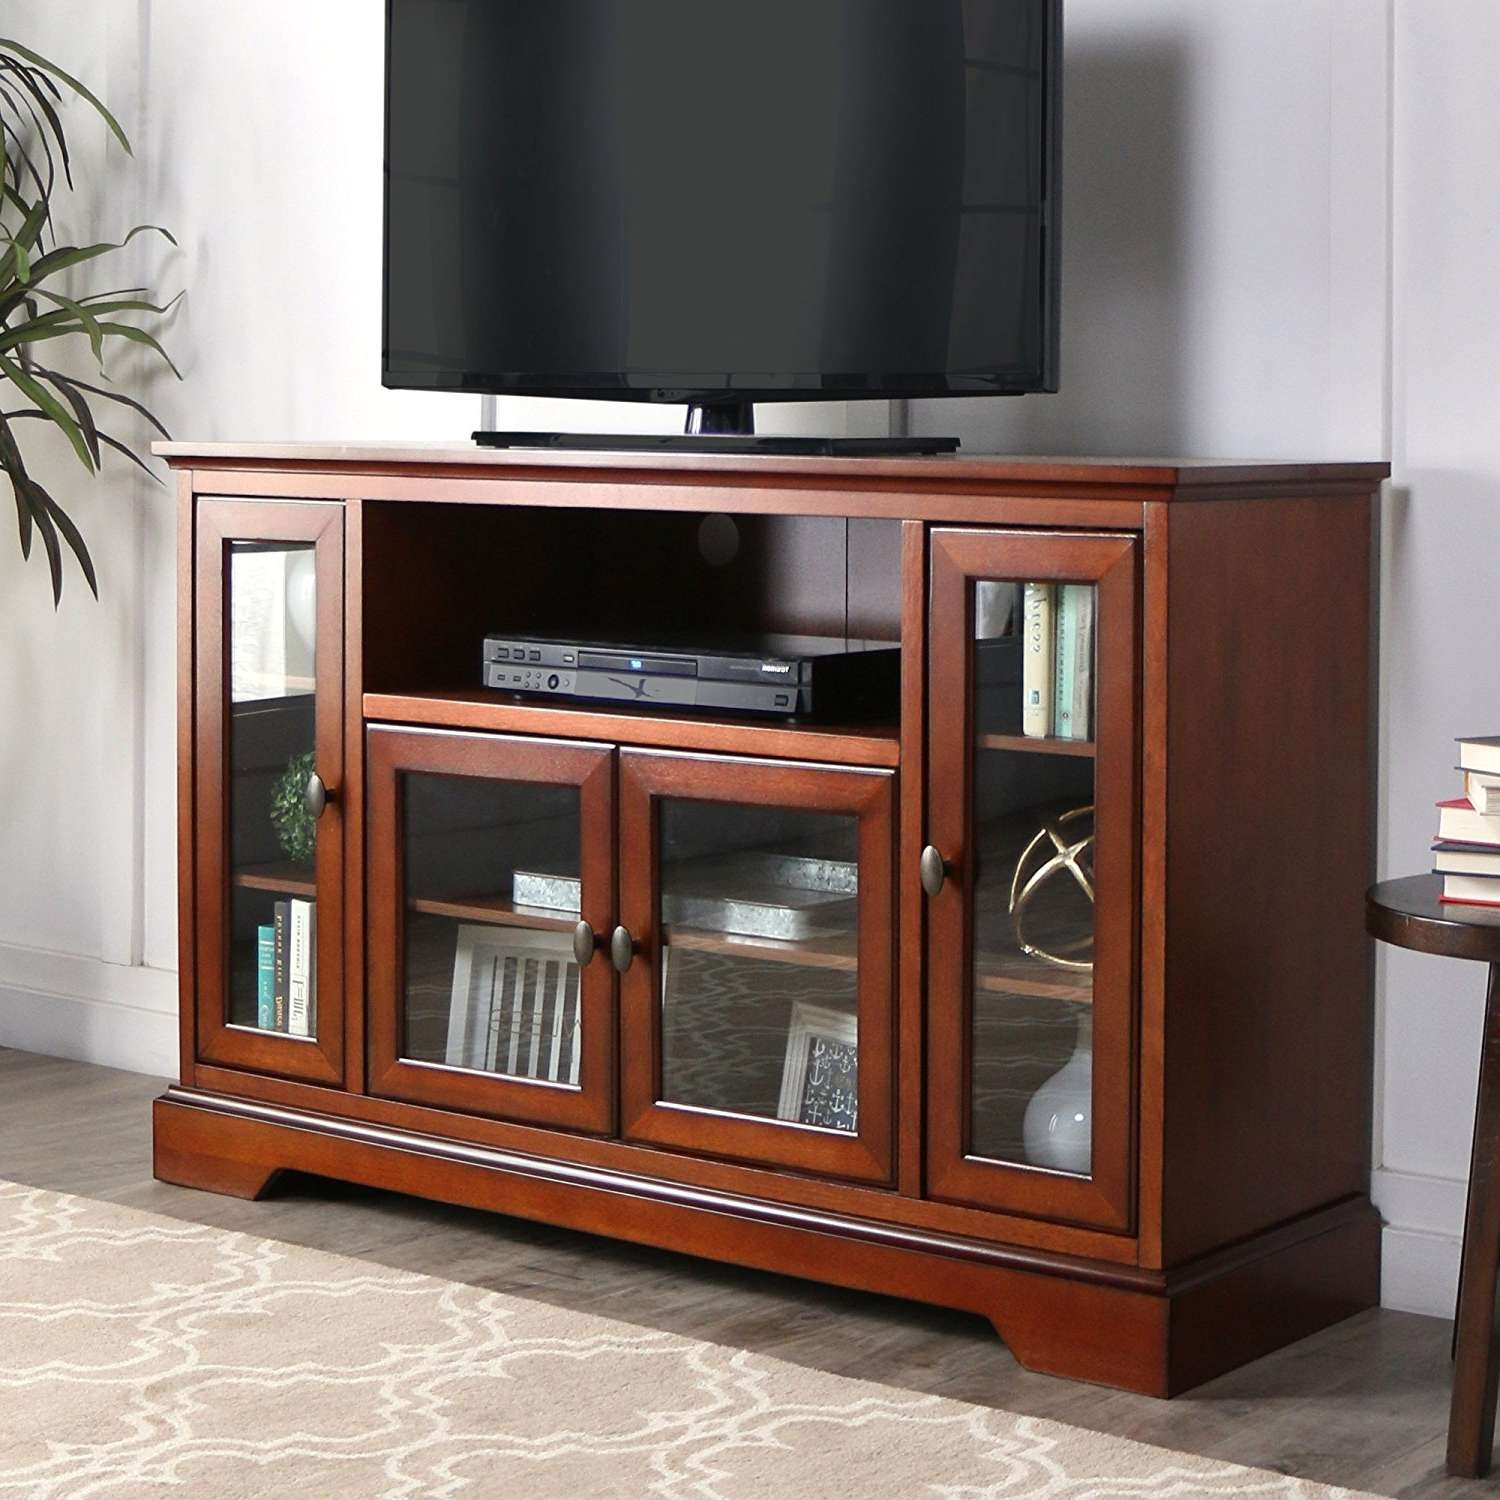 Rustic Tv Stand With Barn Doors : Ideal Rustic Furniture Tv Stand Inside Wooden Tv Stands With Doors (View 12 of 15)